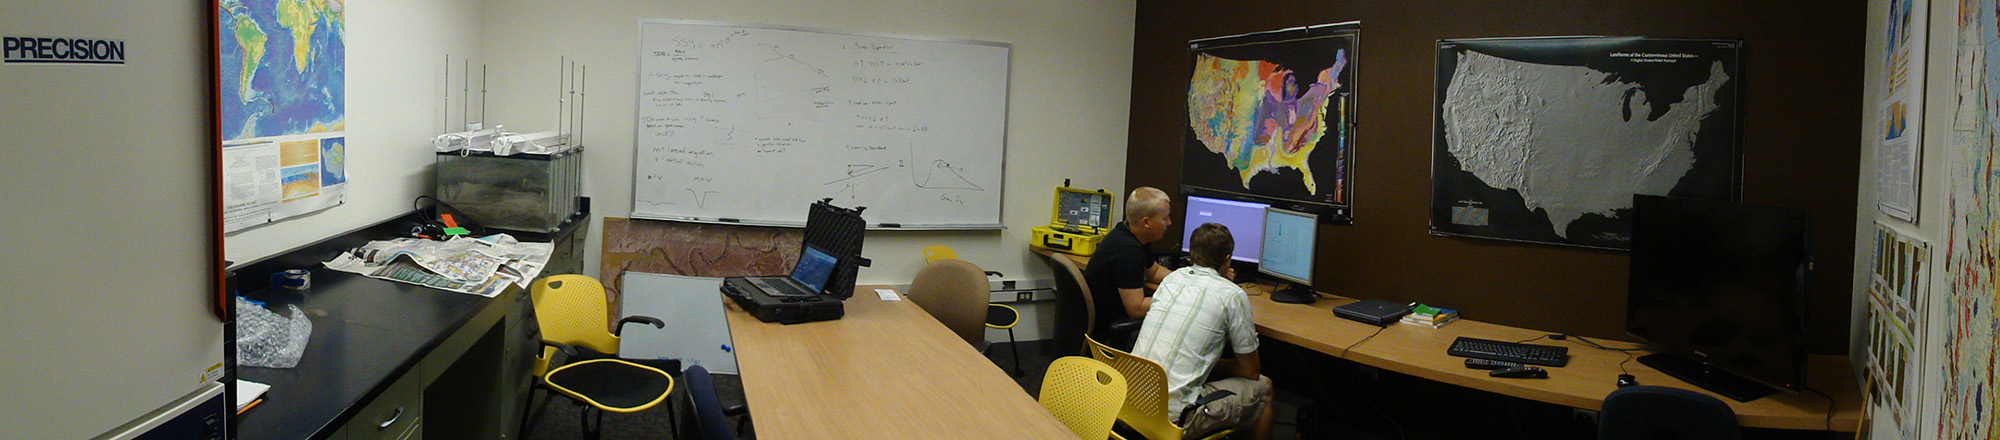 two people sitting at desk looking at computer